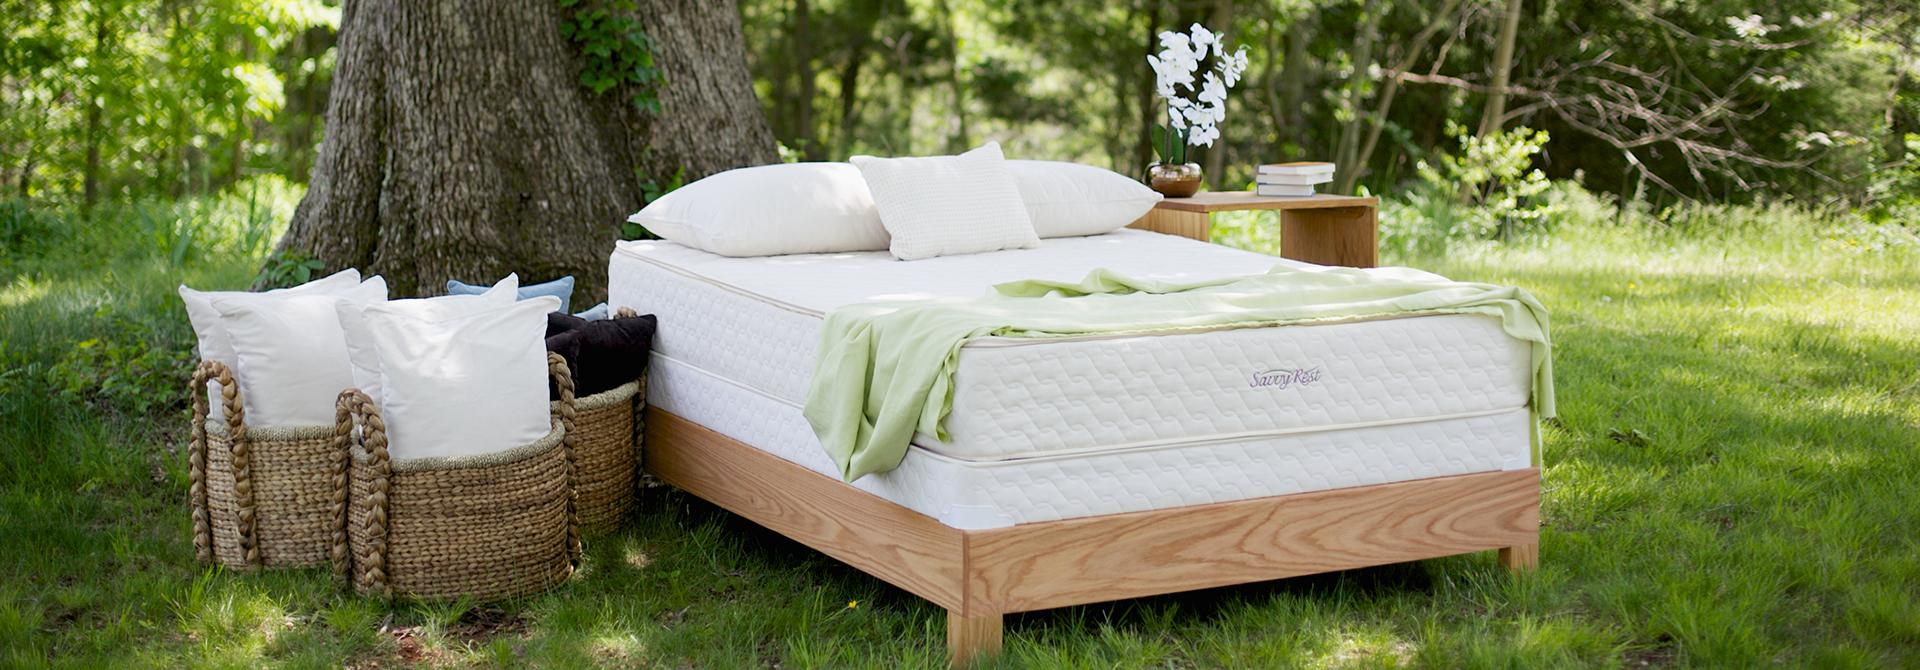 Are queen mattress natural no latex baby remarkable